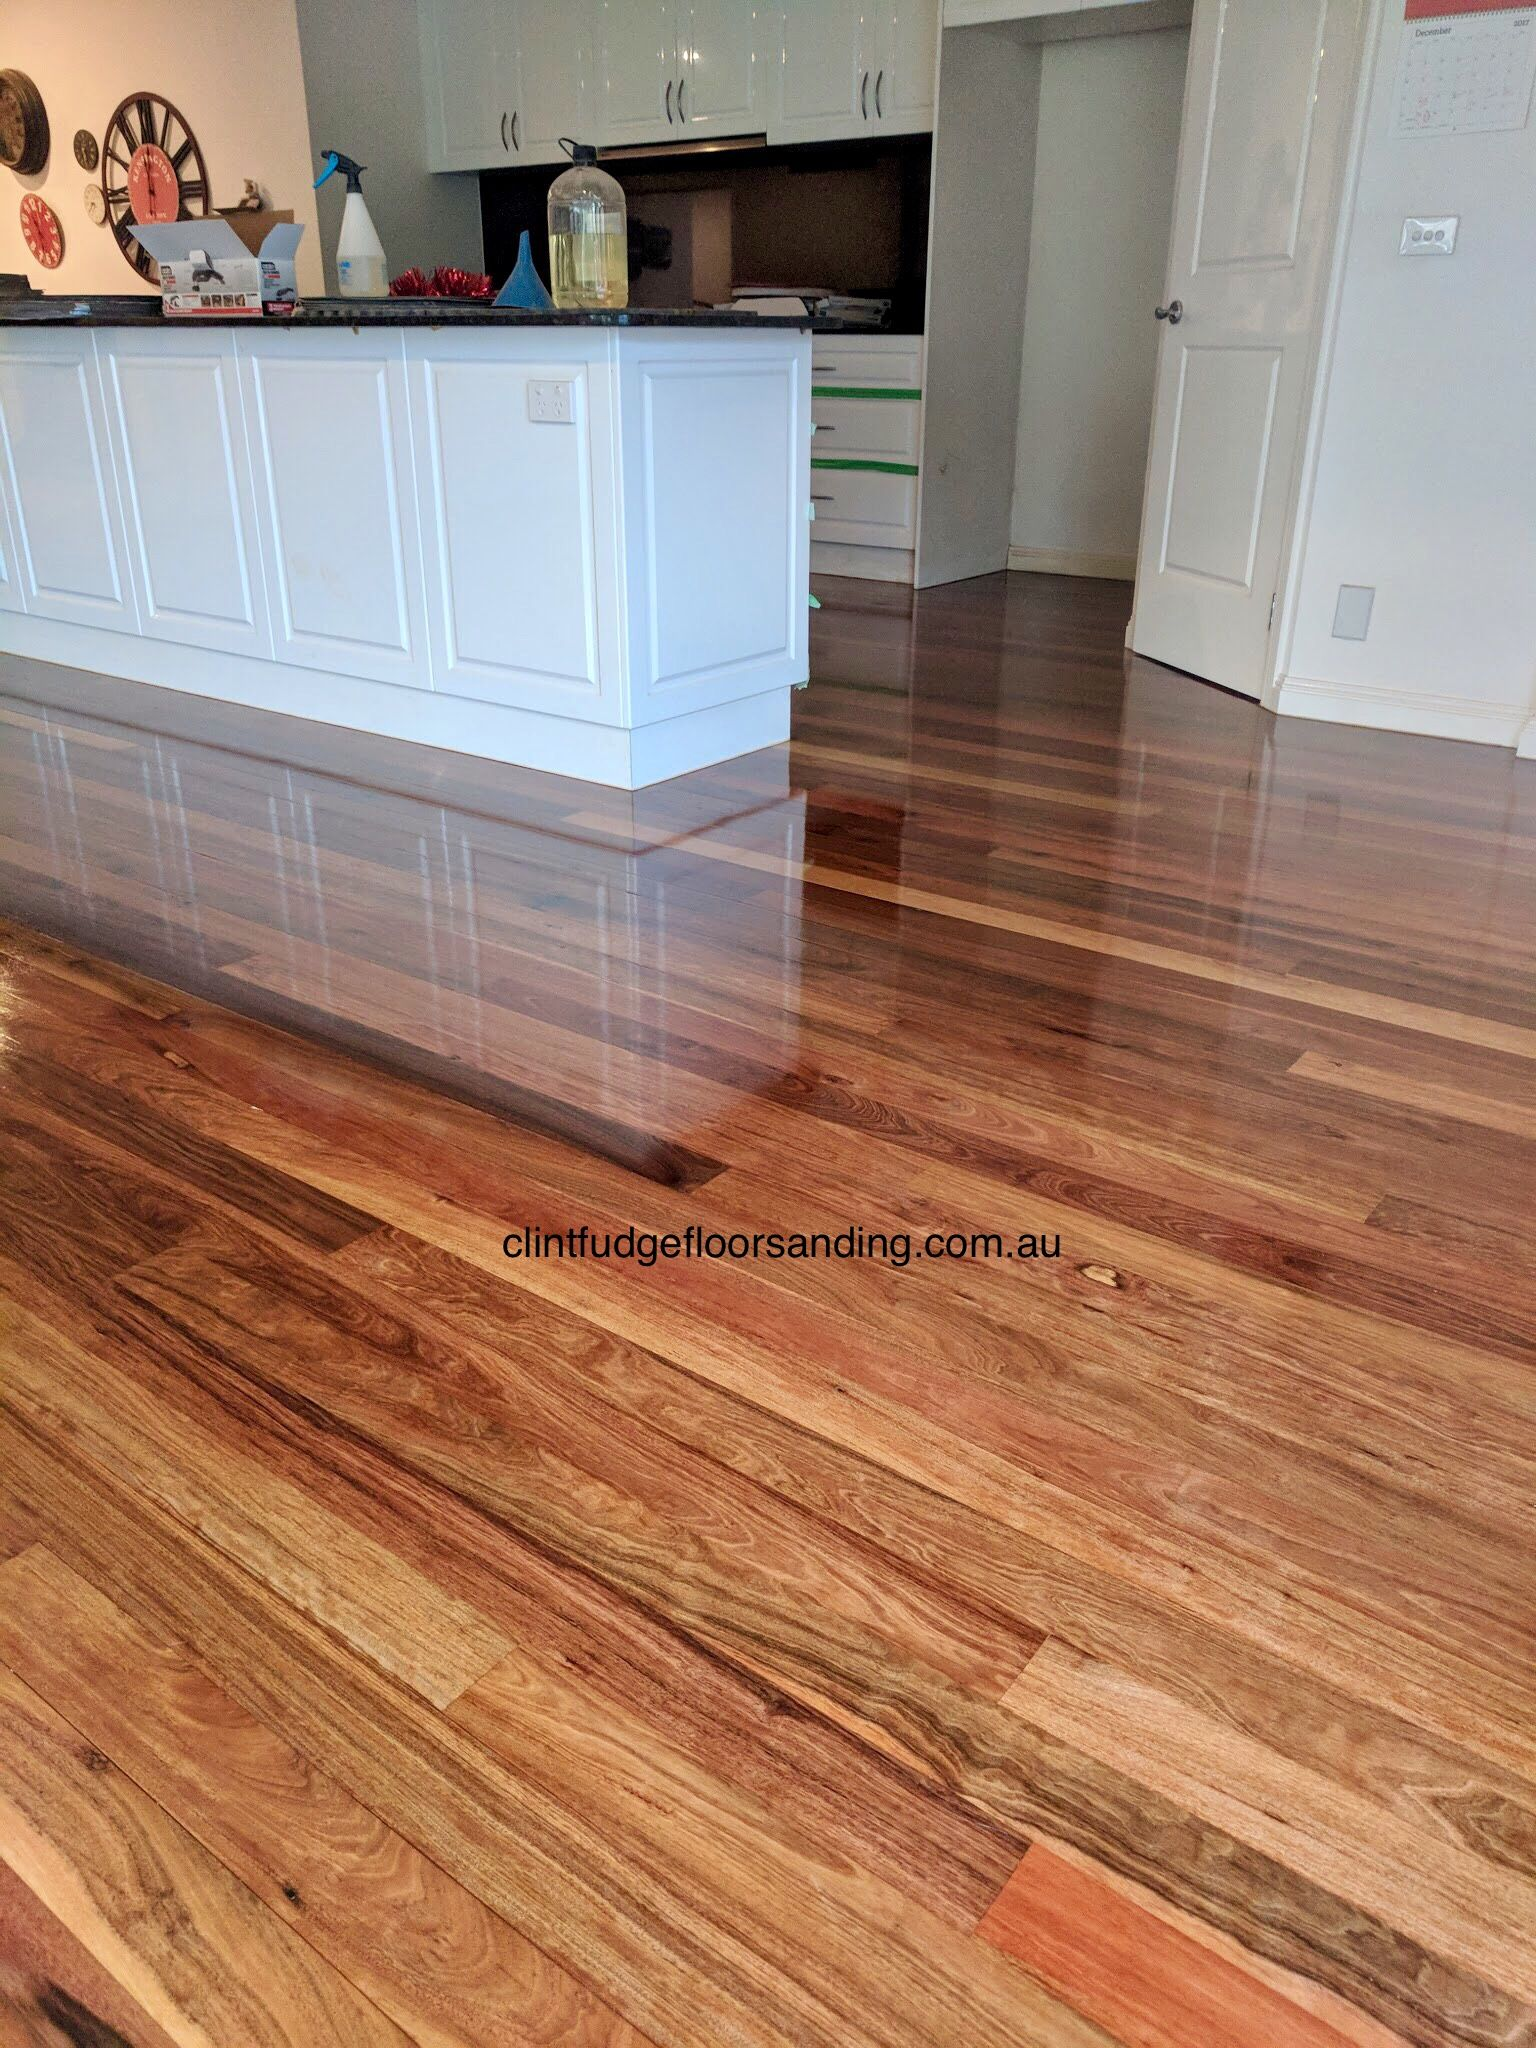 Ironbark Floor Finished In A High Gloss 2pac Polyurethane Flooring High Gloss Floors Floor Finishes